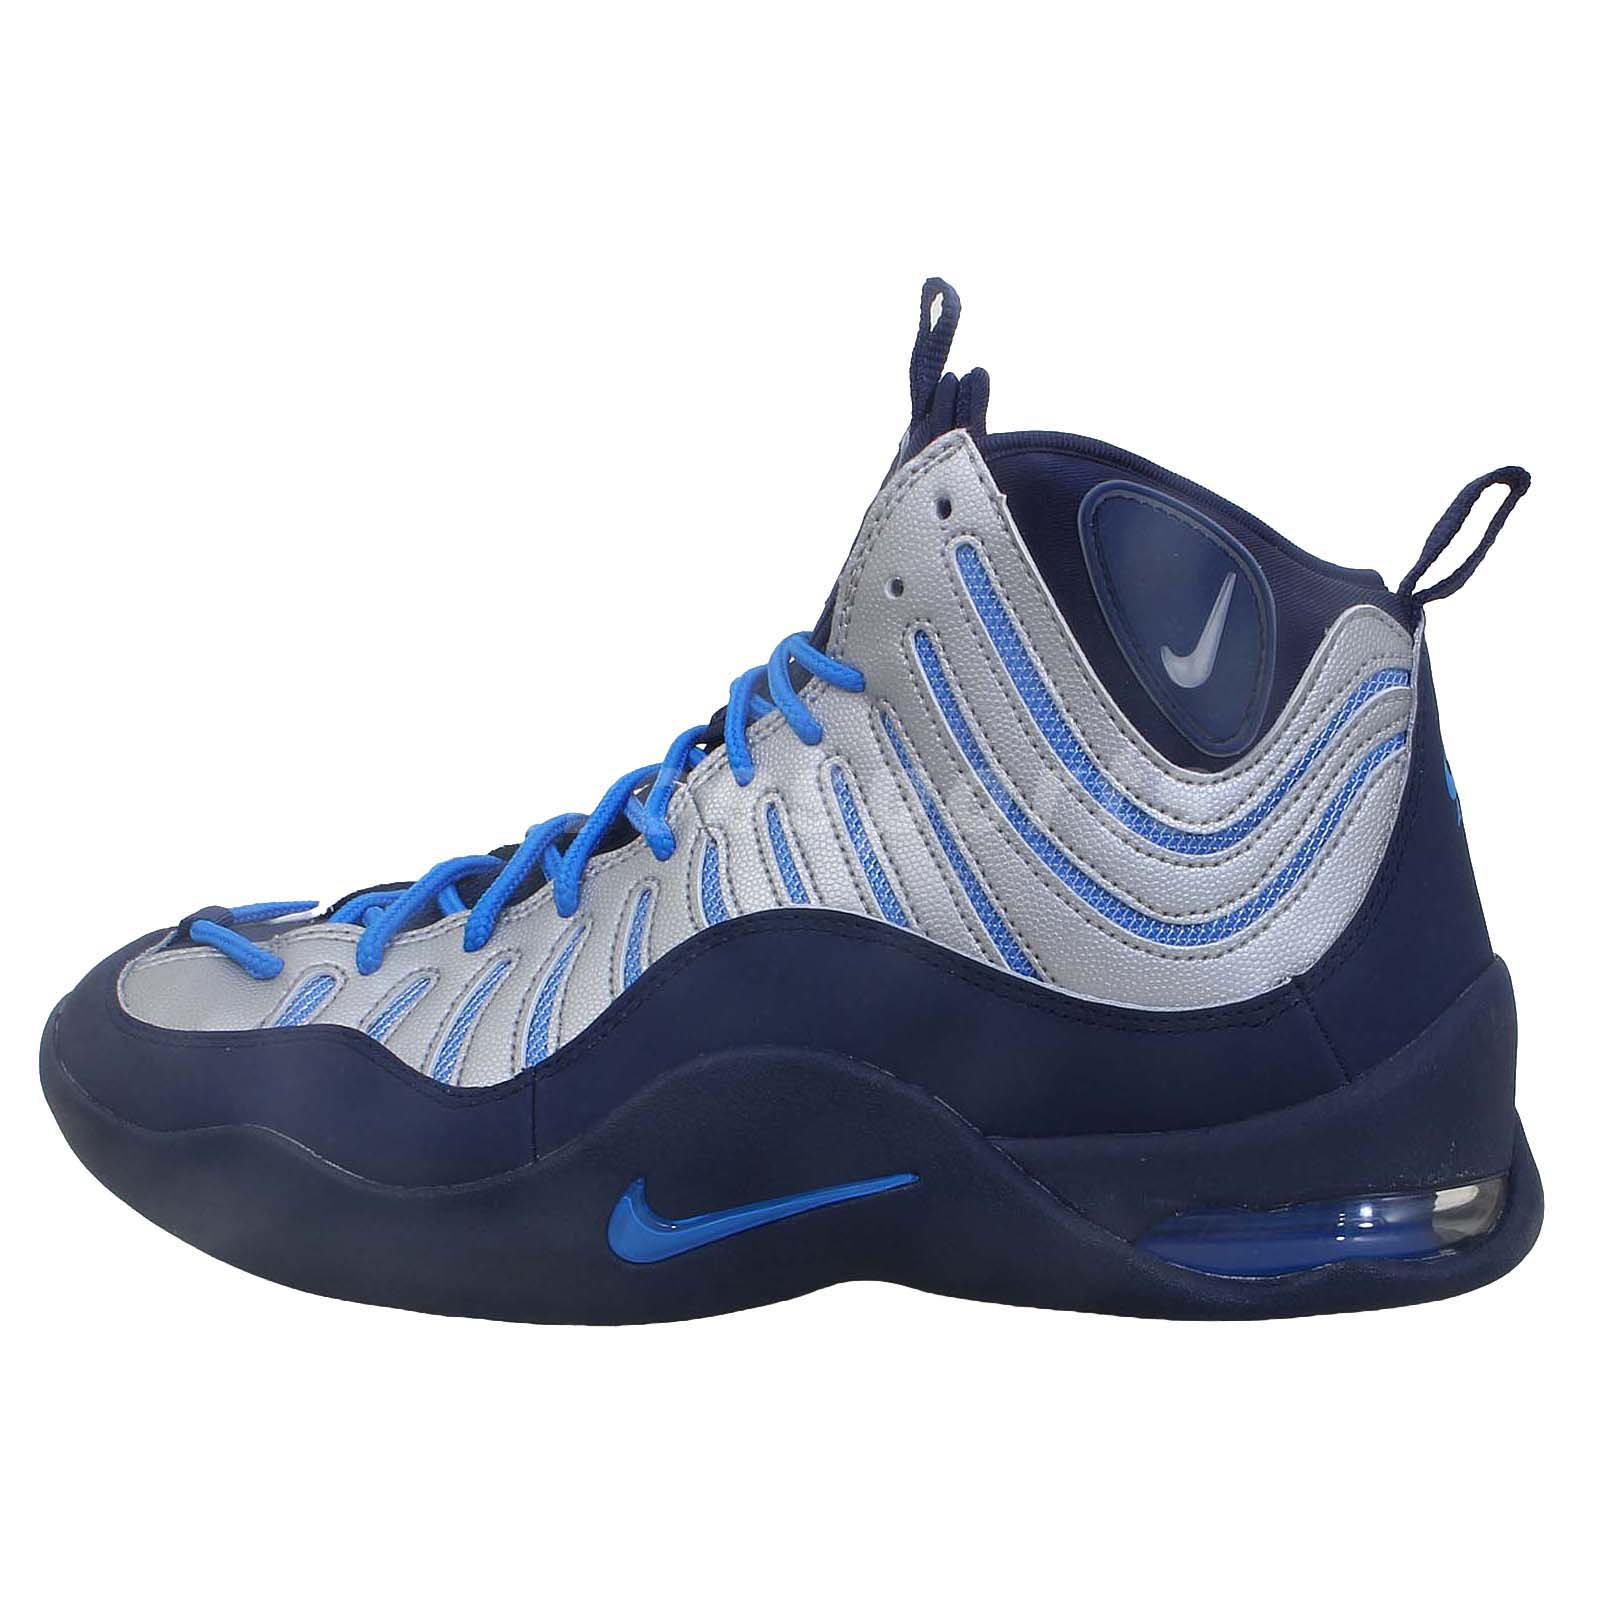 Tim Hardaway Shoes For Sale